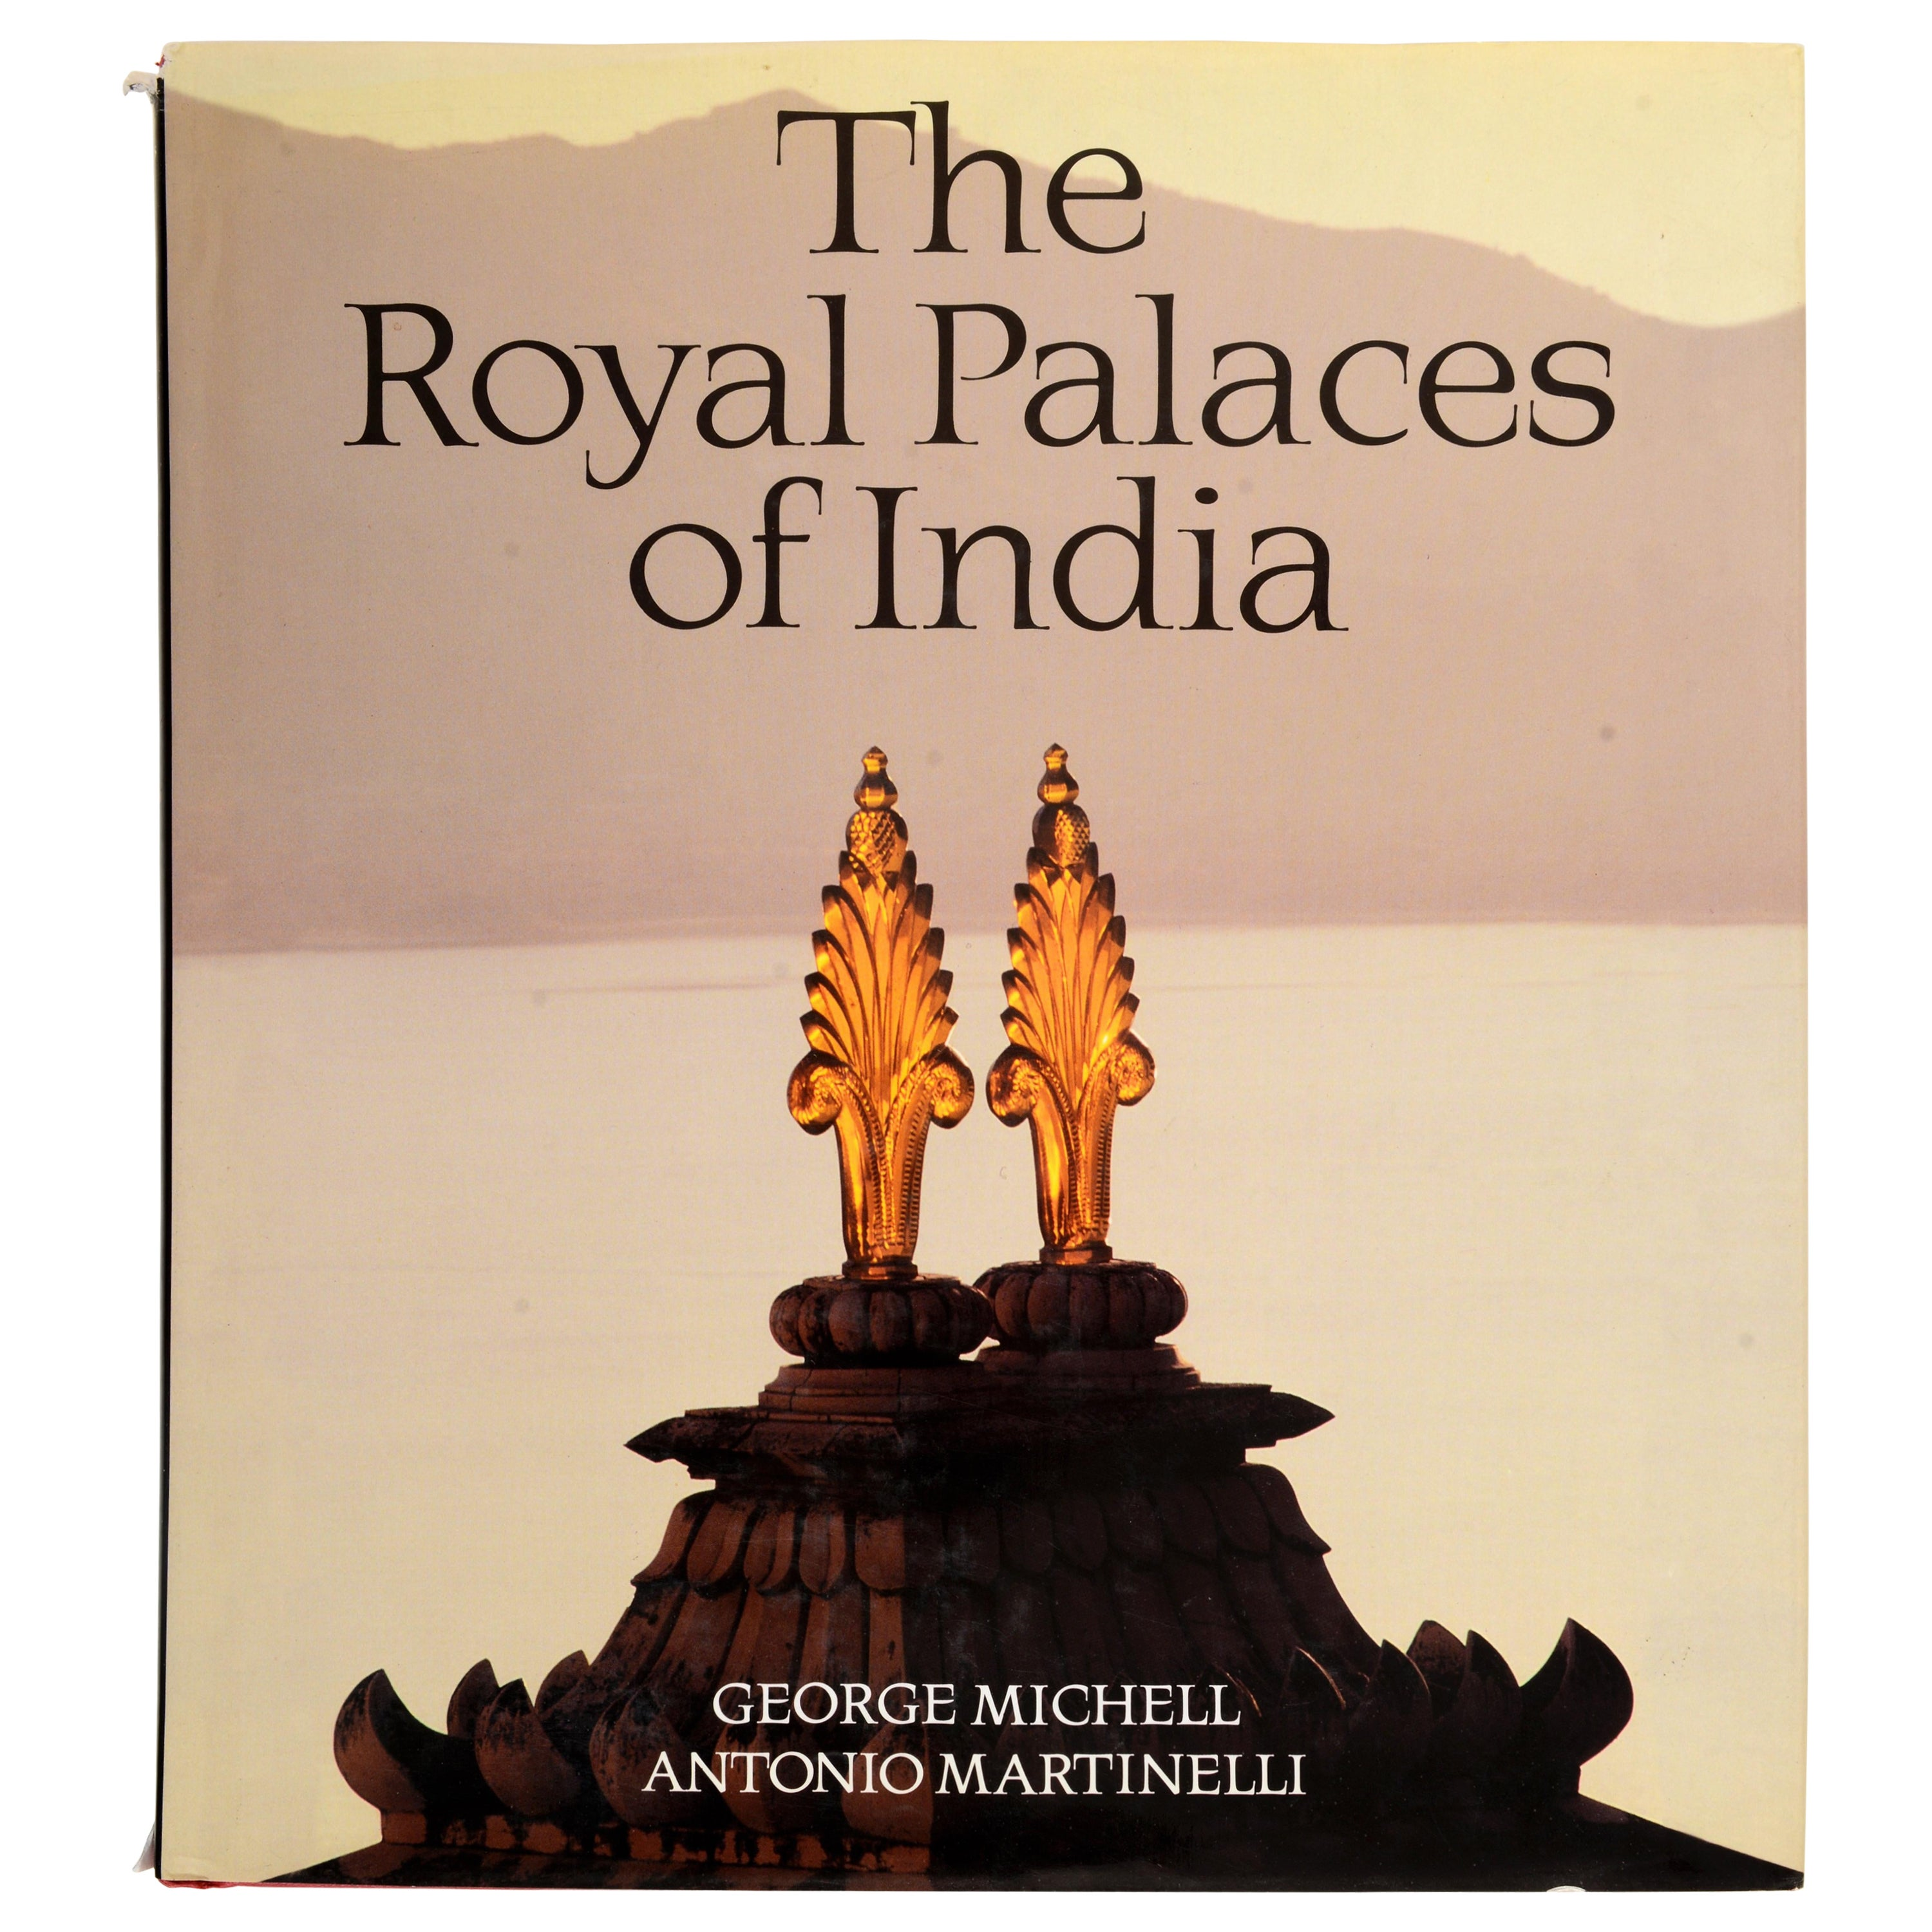 The Royal Palaces of India by George Michell, 1st Ed